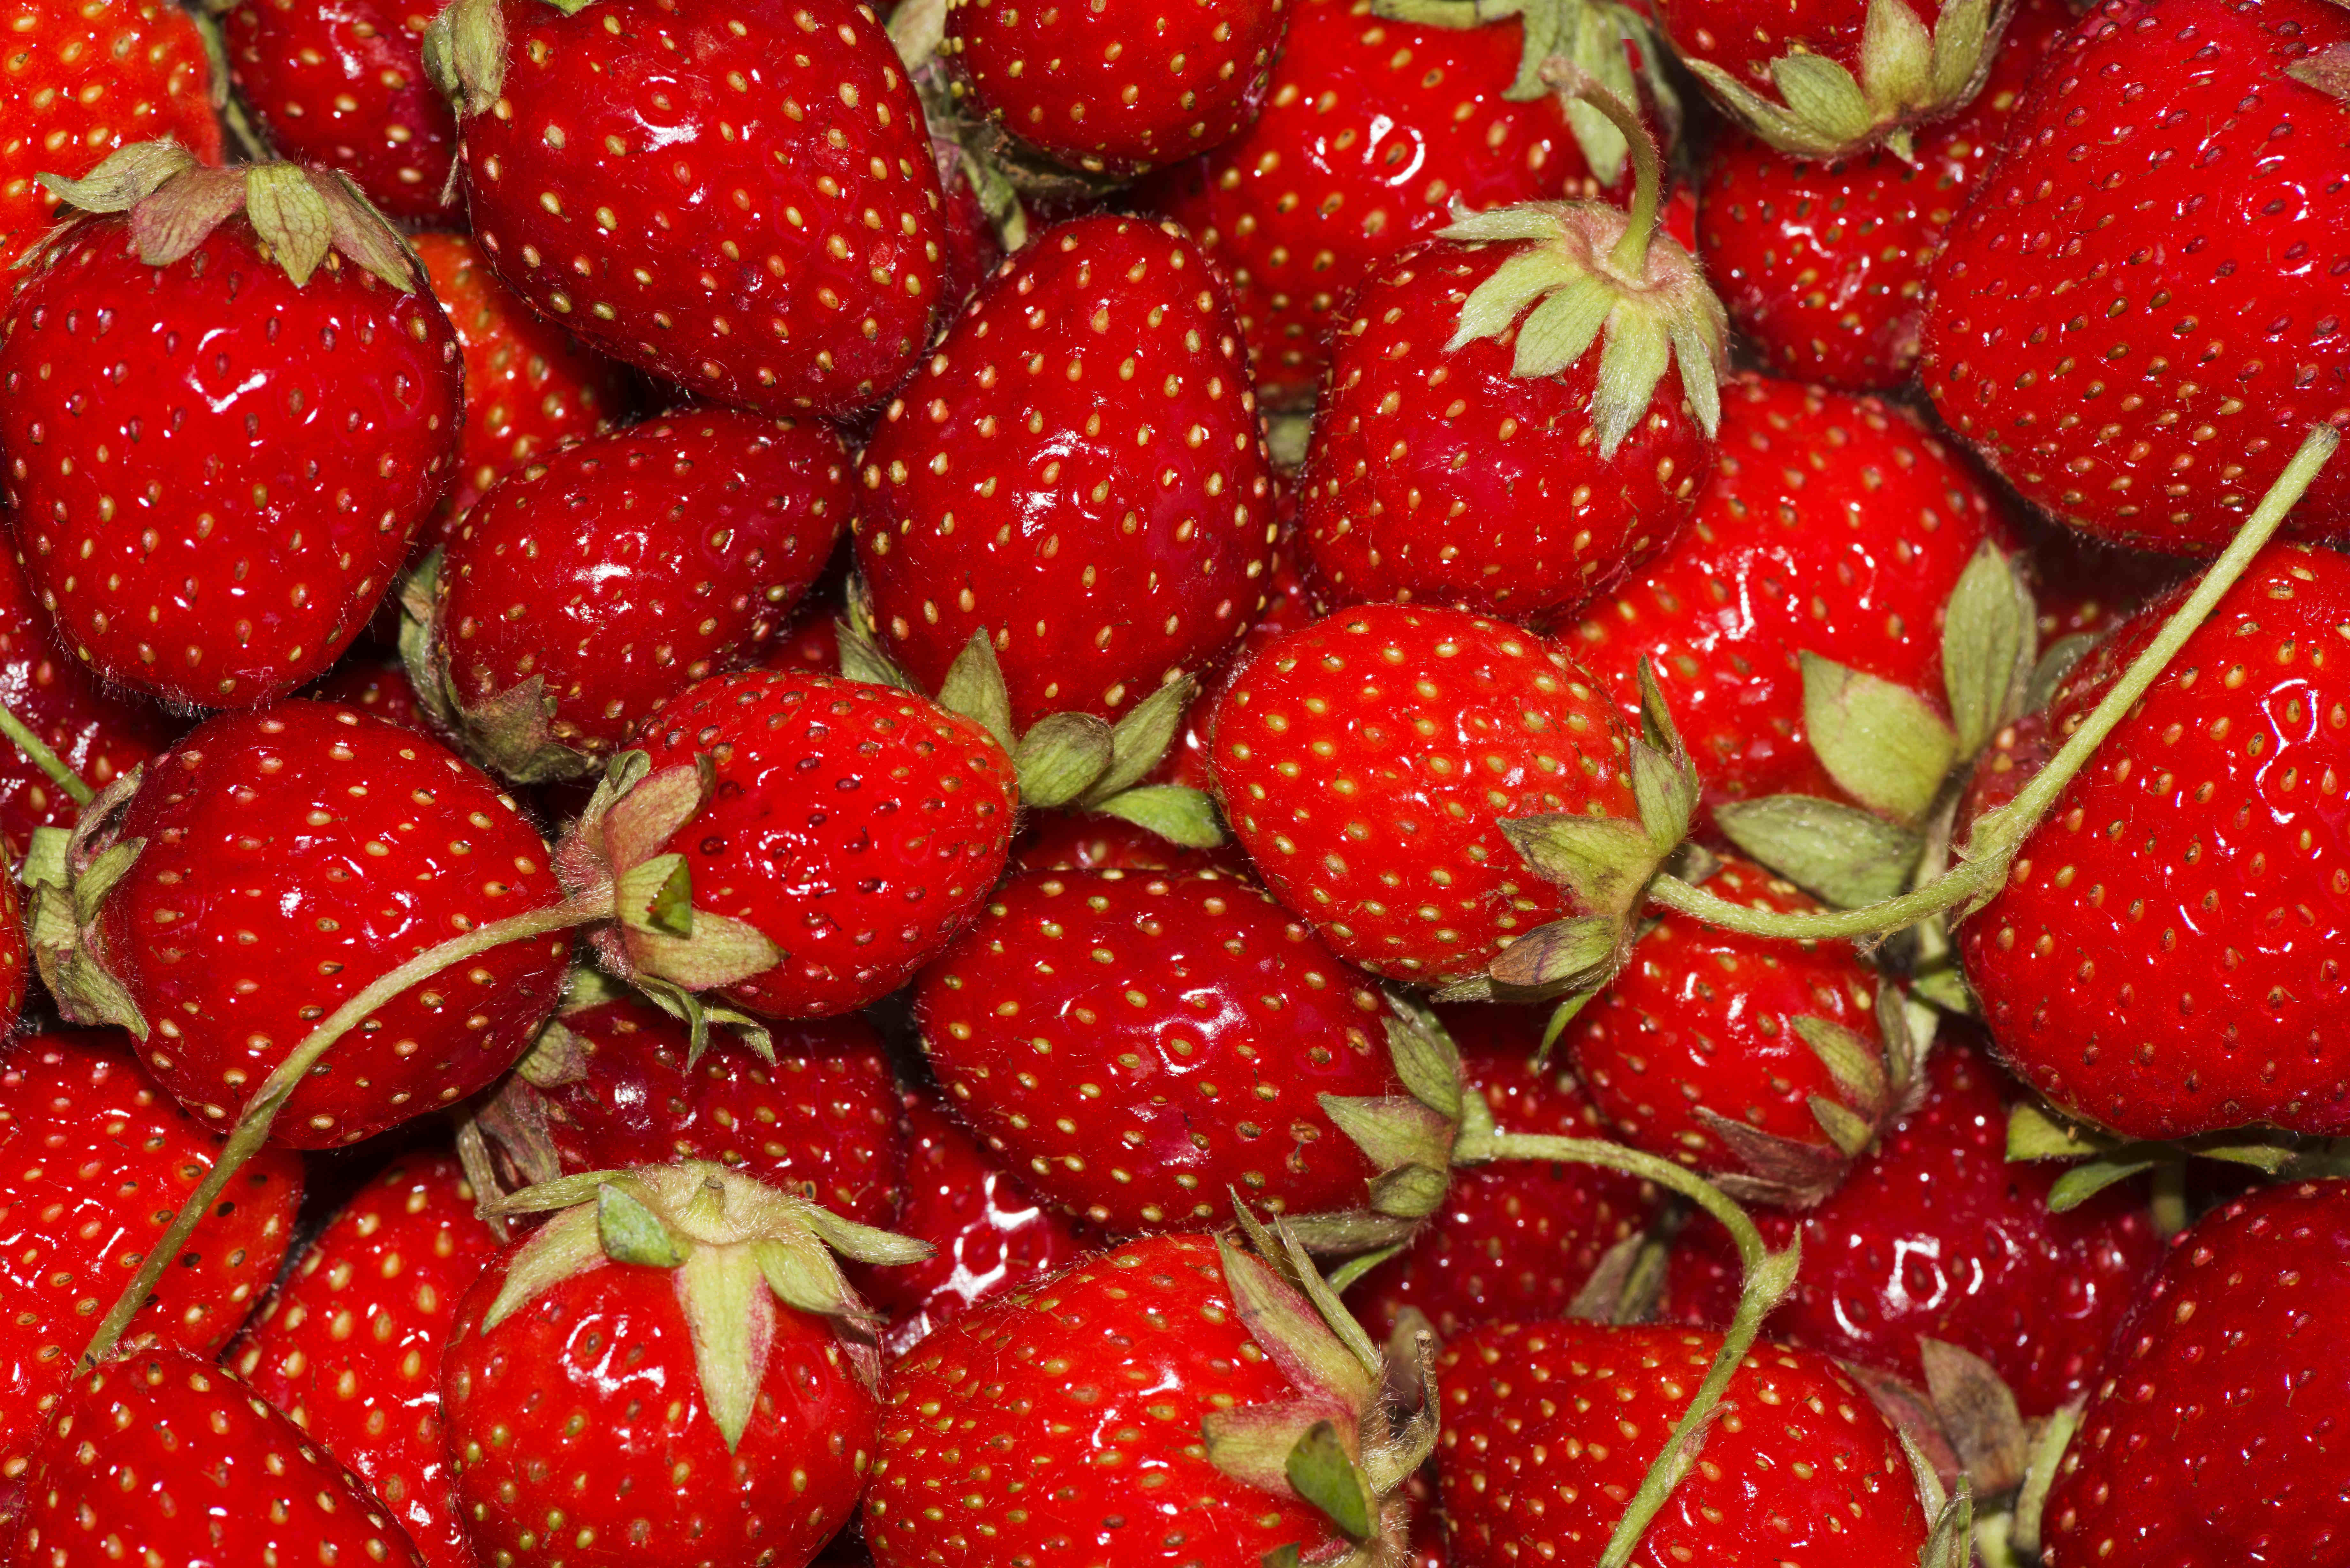 There were over 100 reports of sewing needles being found inside strawberries.信用:PA